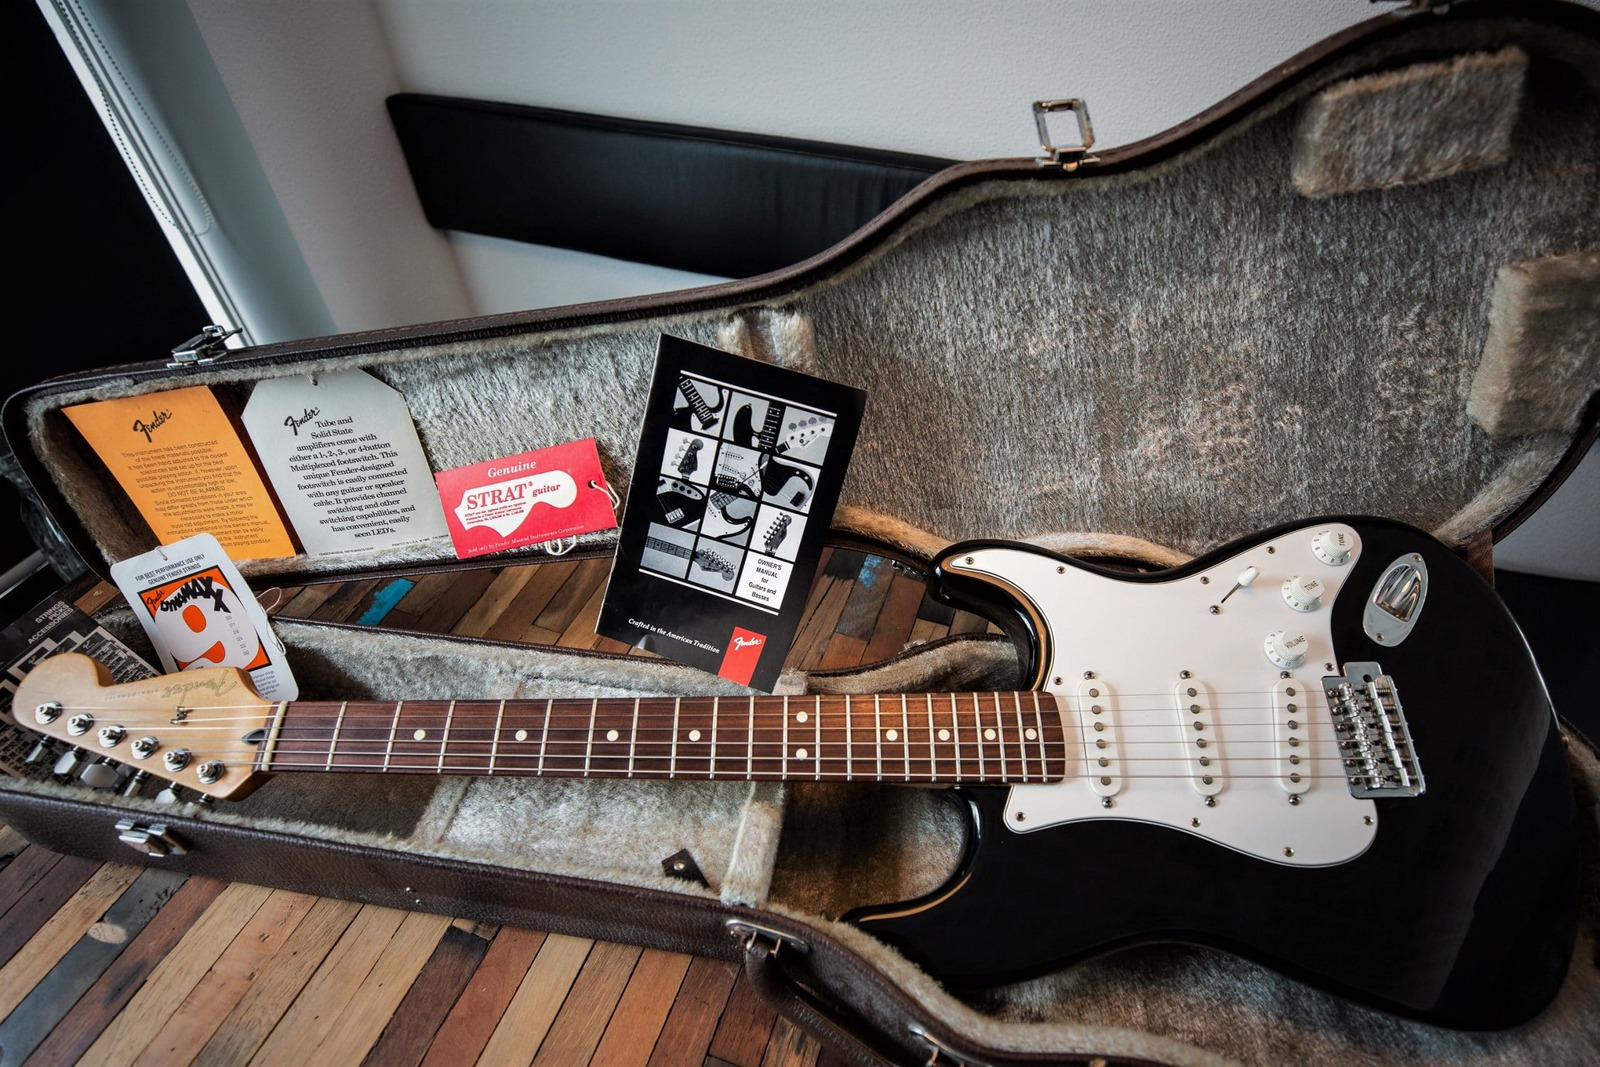 5 Best Guitar Cases for Stratocasters in 2020 – Buyer's Guide